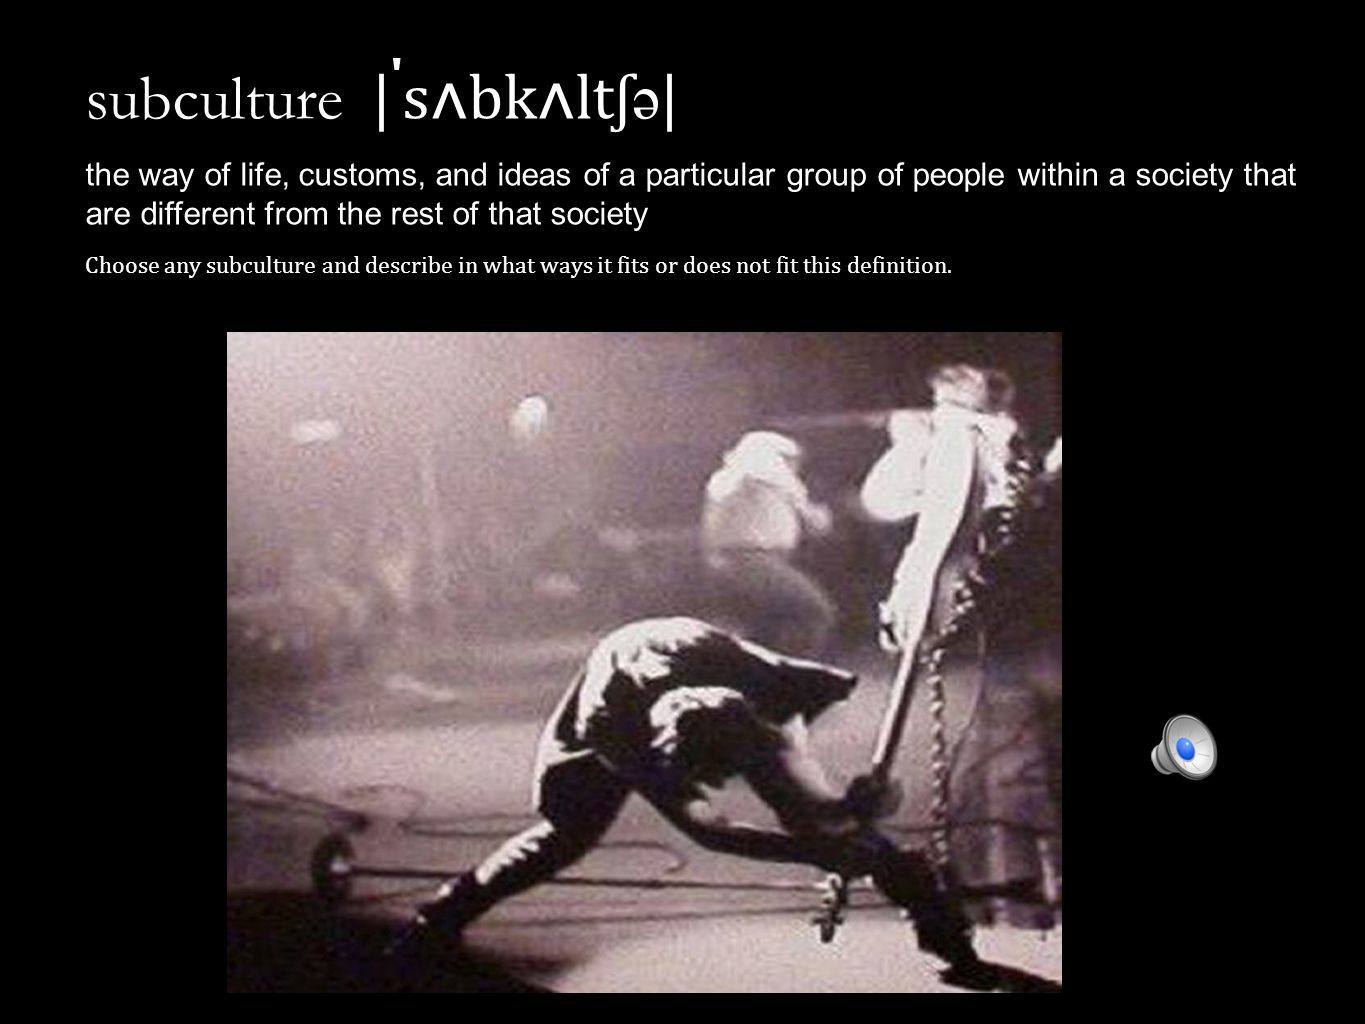 subculture | ˈ s ʌ bk ʌ lt ʃ ə | the way of life, customs, and ideas of a particular group of people within a society that are different from the rest of that society Choose any subculture and describe in what ways it fits or does not fit this definition.